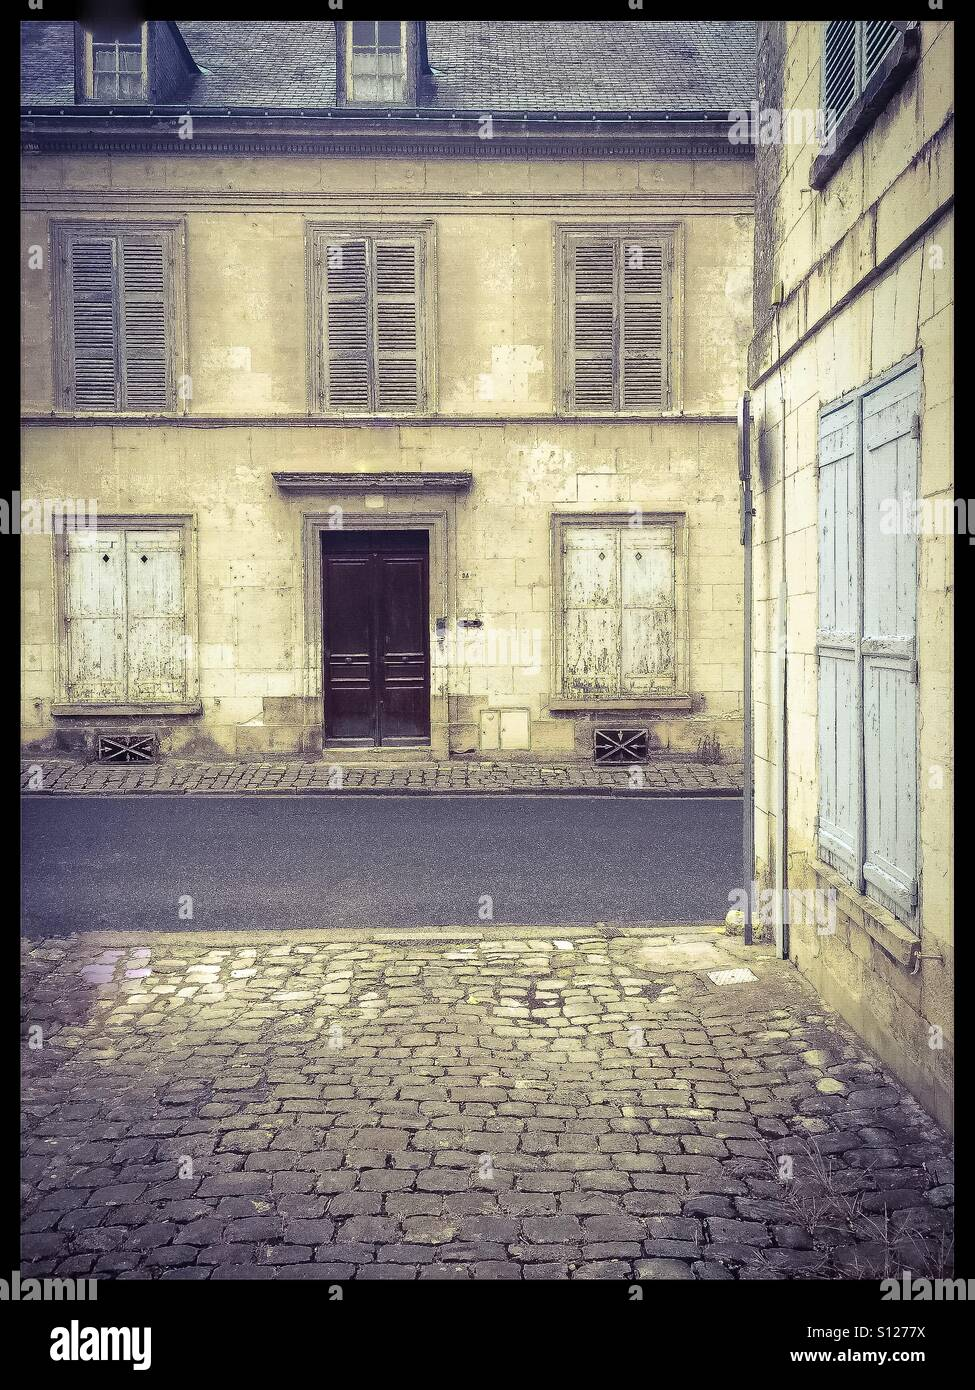 Old French houses. - Stock Image